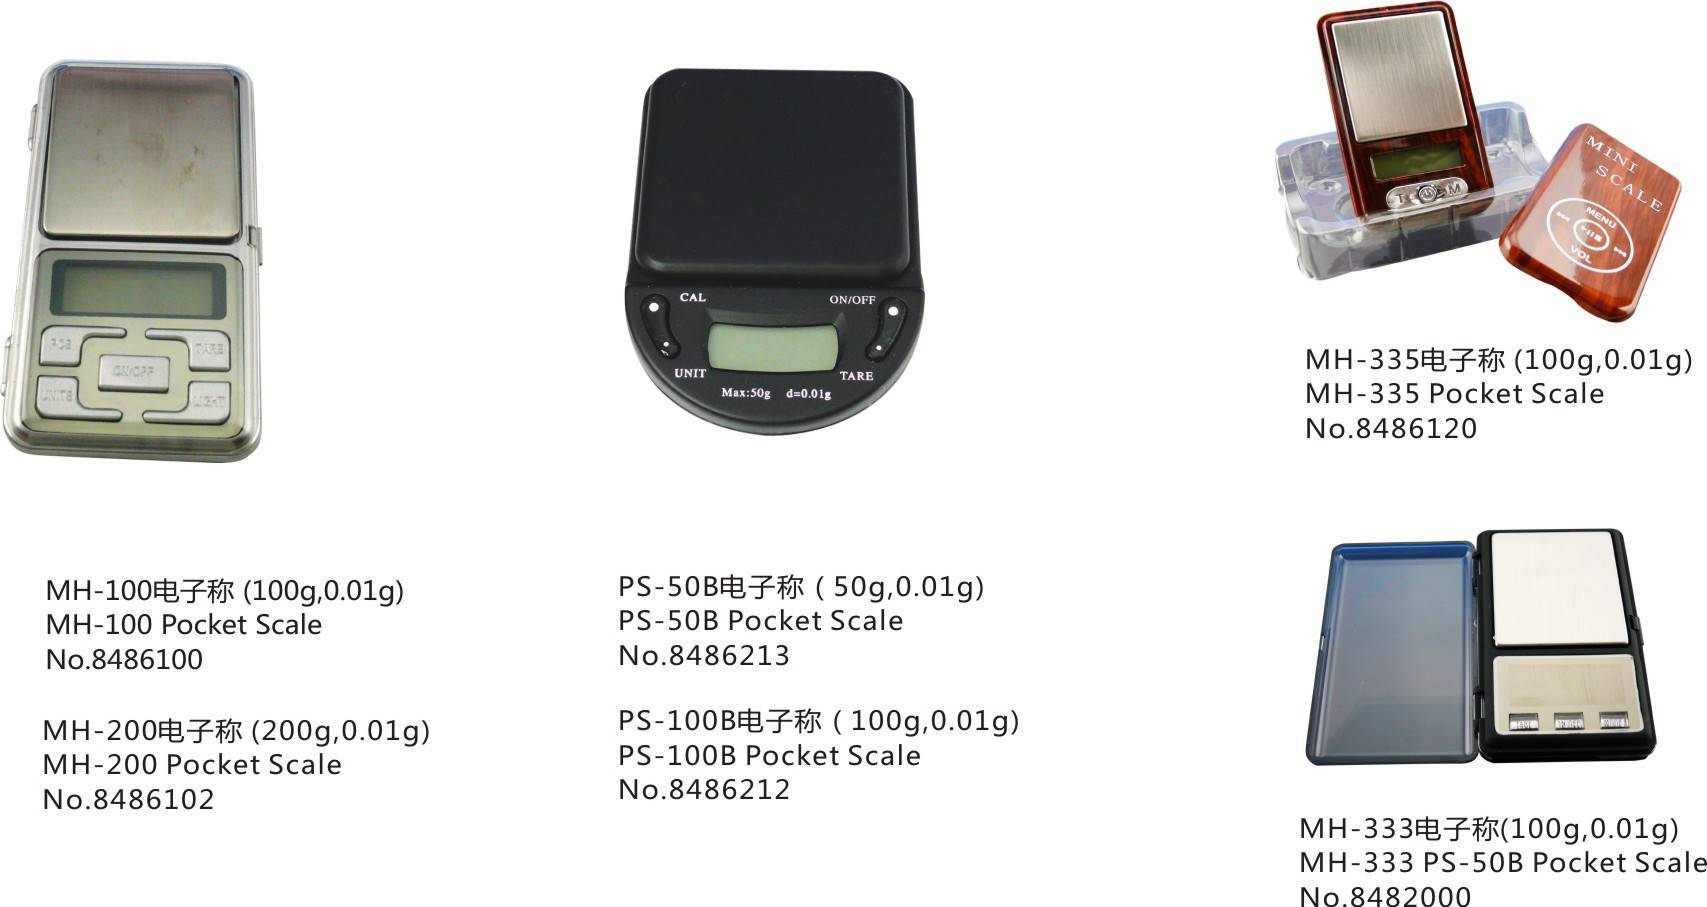 Sell Pocket Scales